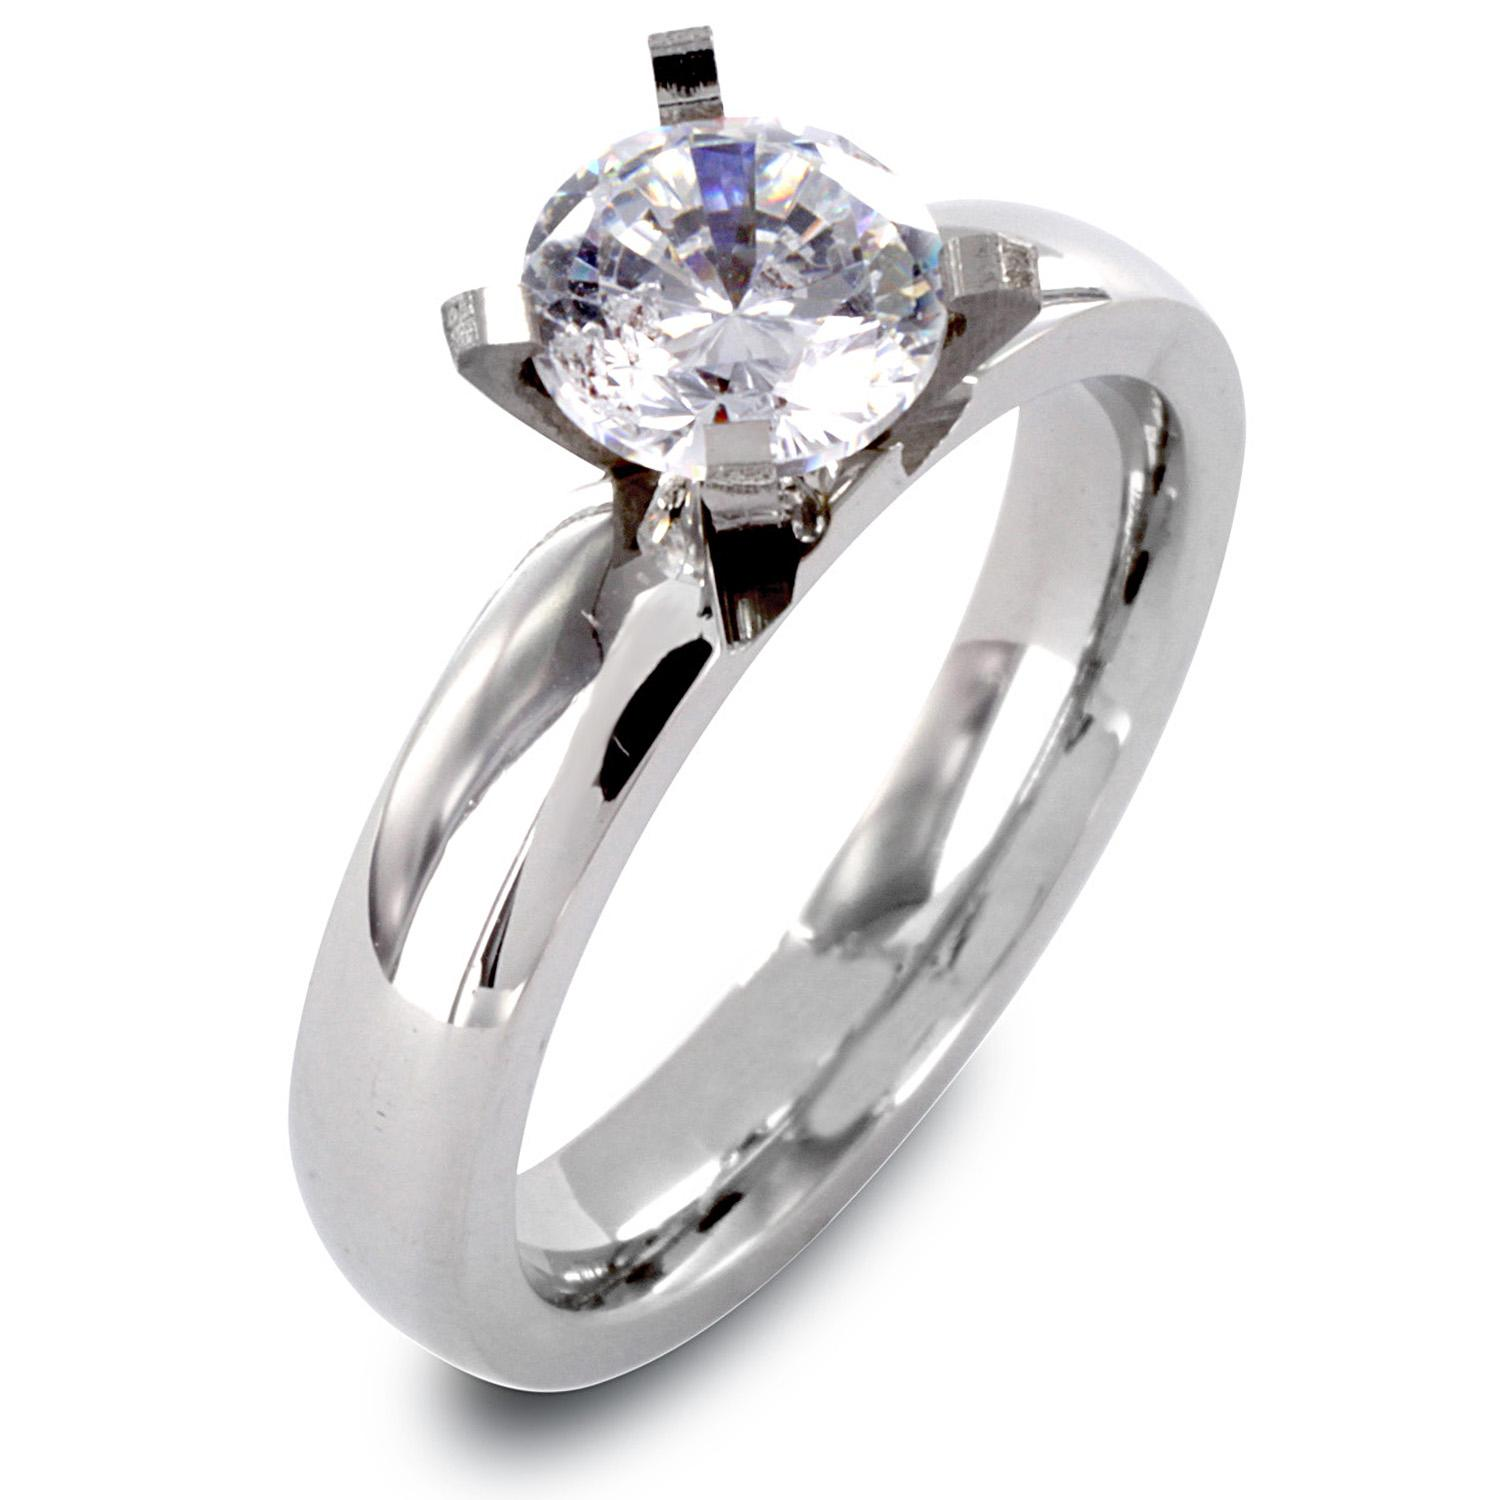 Stainless Steel Clear CZ Solitaire Prong Set Ring